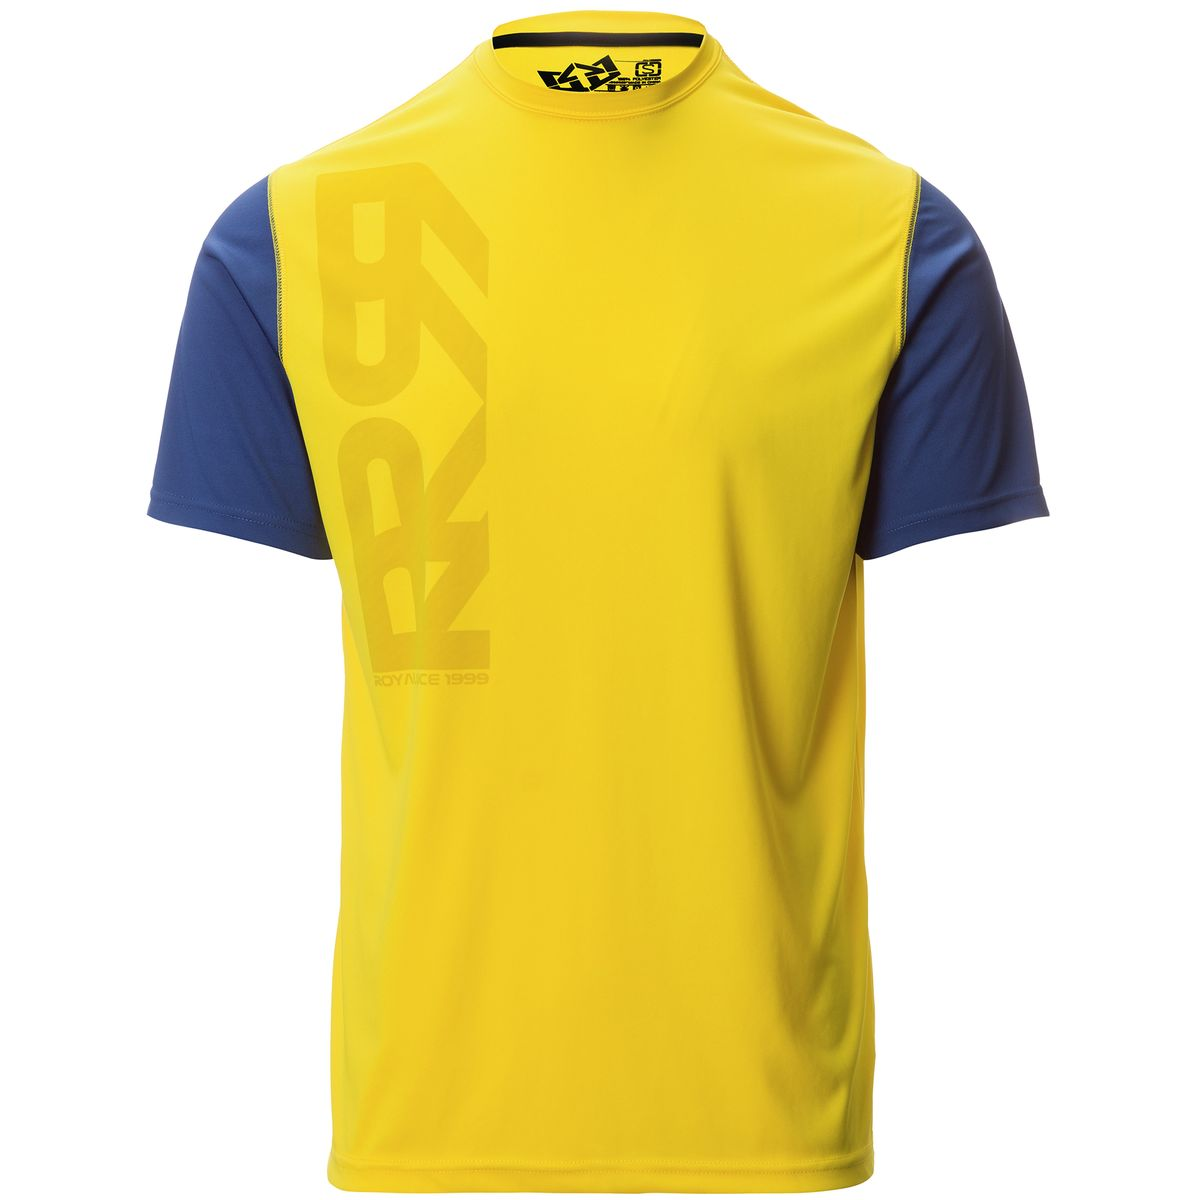 Royal Racing Core Jersey Short Sleeve Men's